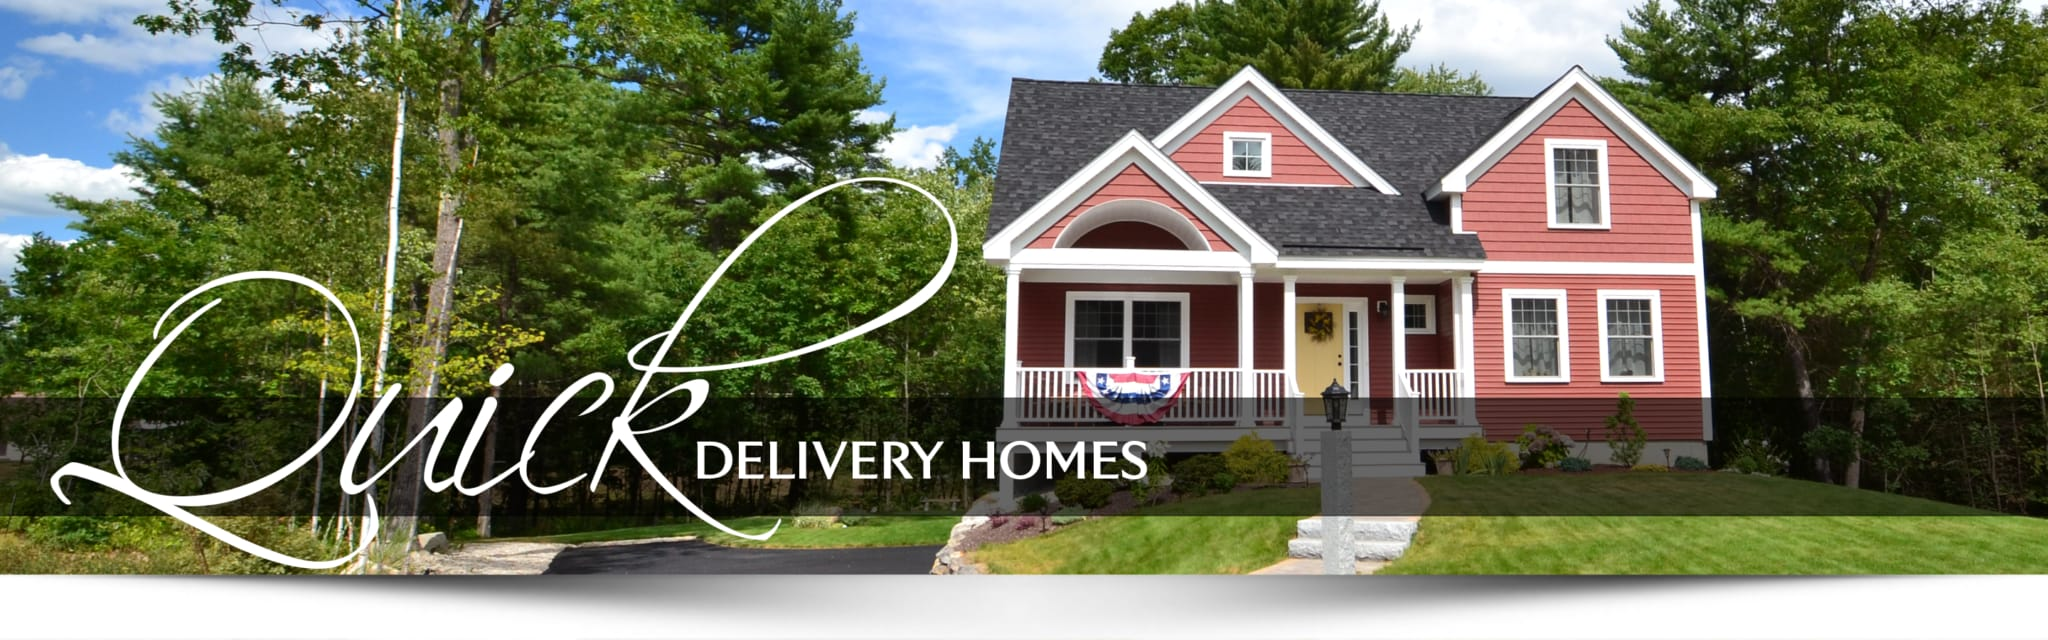 Red house, quick delivery homes banner